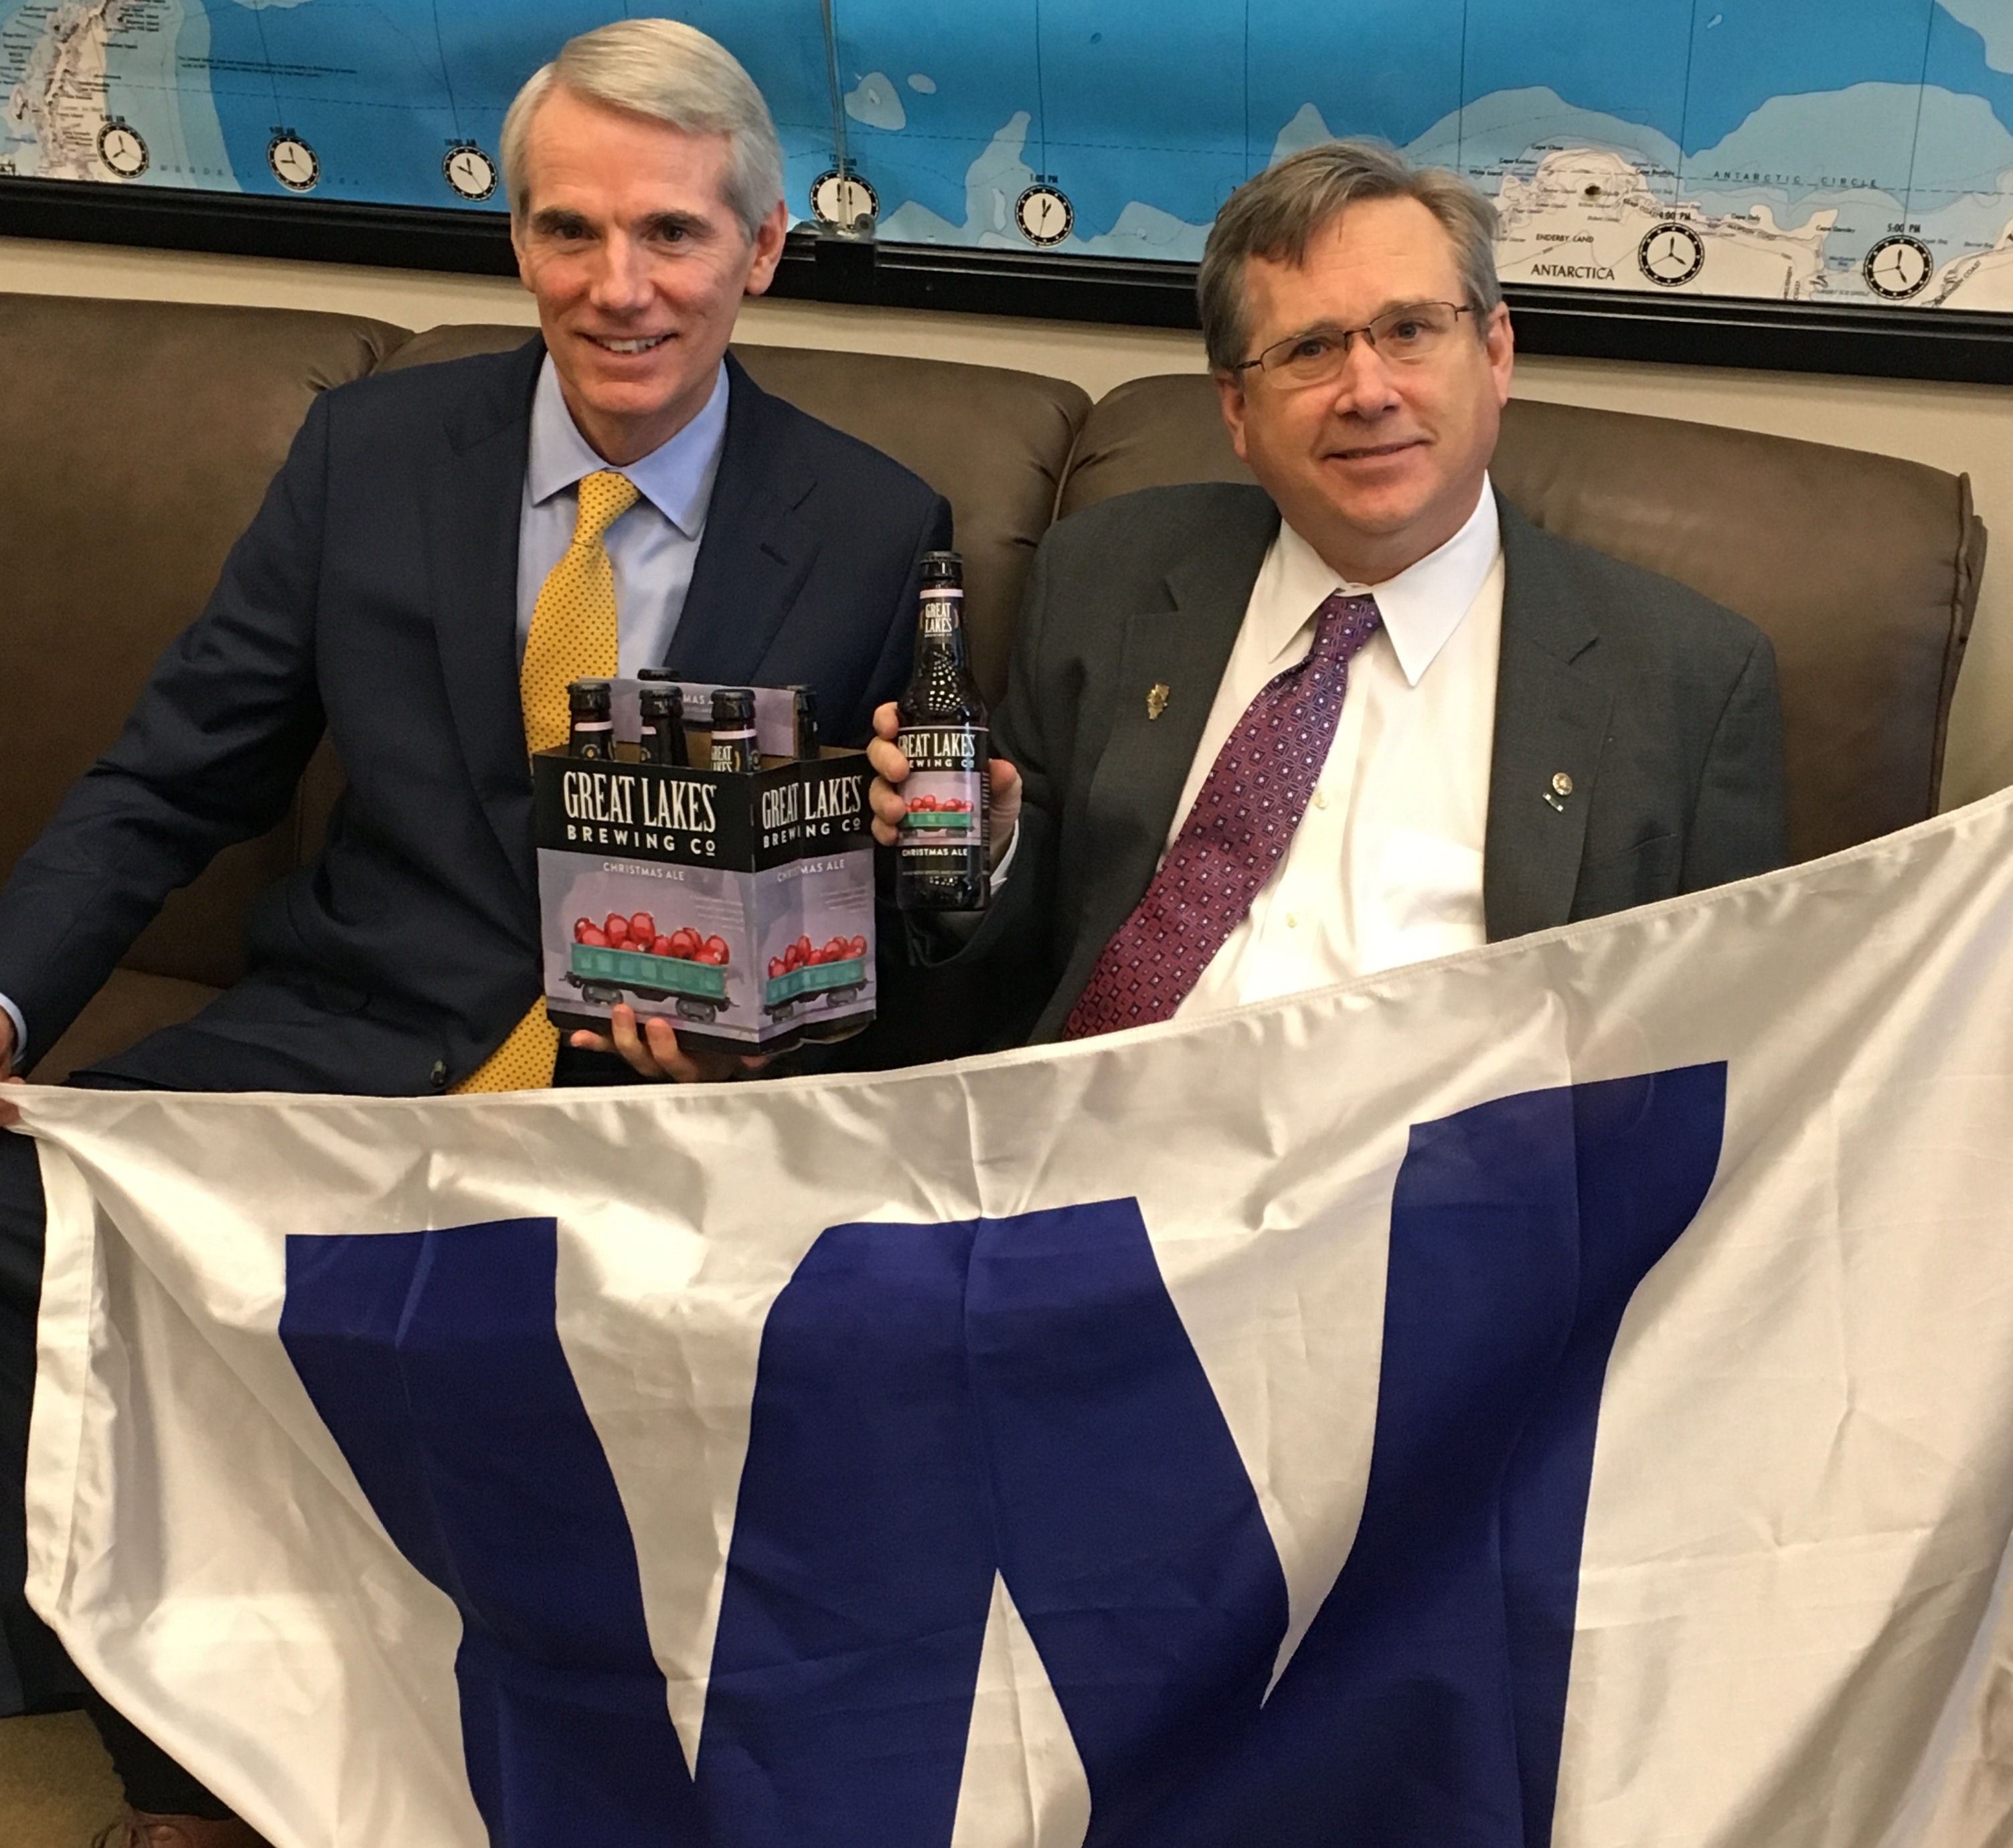 "Ohio Sen. <a class=""memberLink"" title=""Click to view member info in a new window"" href=""http://data.rollcall.com/members/373?rel=memberLink"" target=""_blank"">Rob Portman</a>, left, handed over beer to Illinois Sen. <a class=""memberLink"" title=""Click to view member info in a new window"" href=""http://data.rollcall.com/members/7051?rel=memberLink"" target=""_blank"">Mark S. Kirk</a>, right. (Courtesy Sen. Kirk's office)"